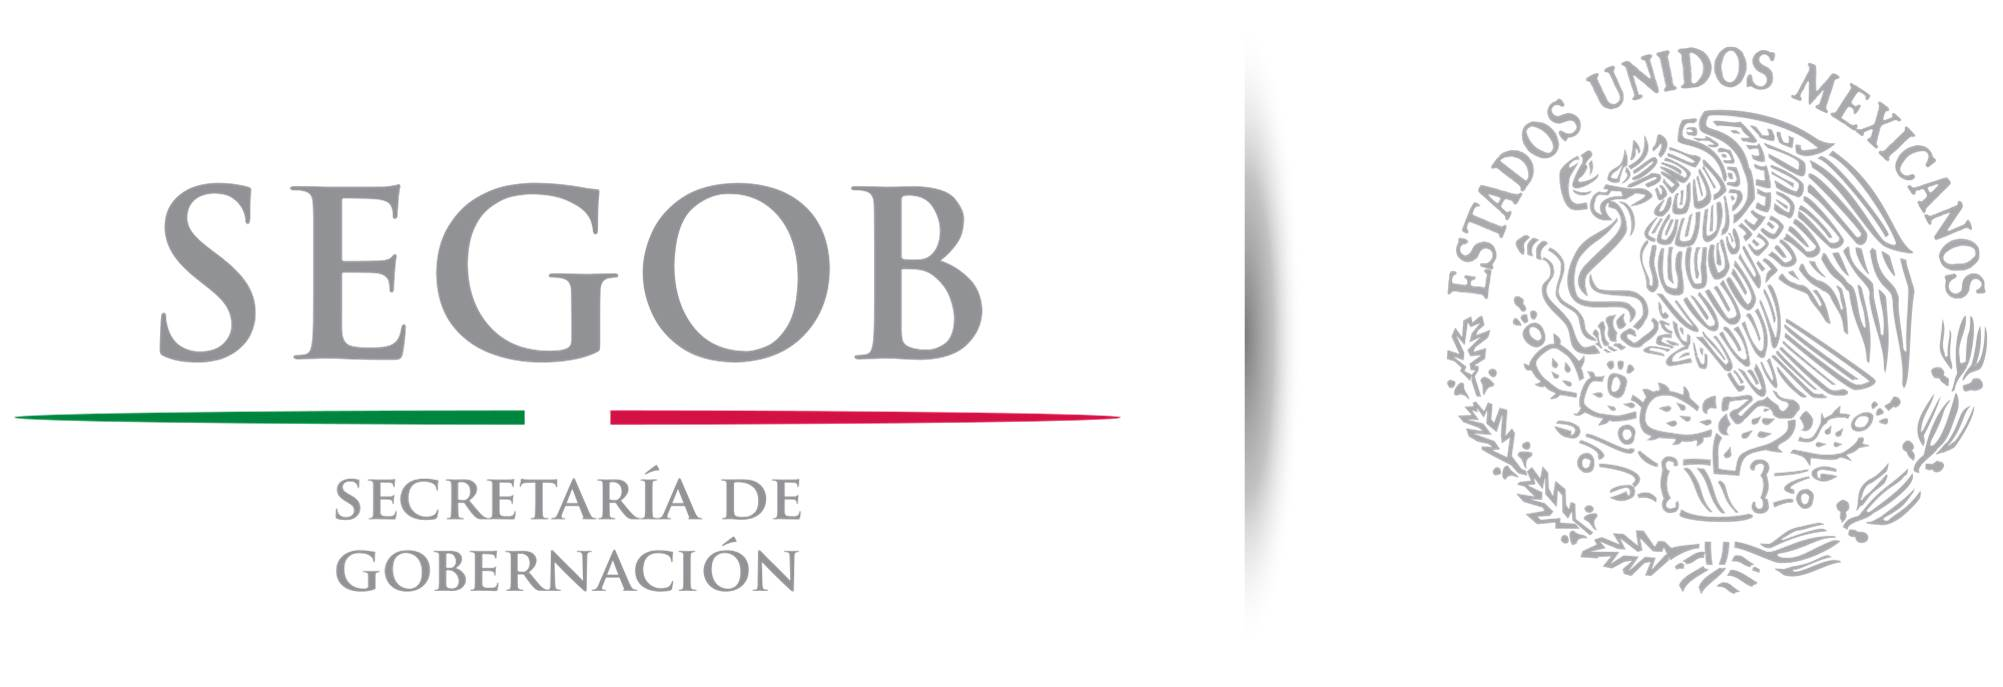 Accreditation allows Mexico to open up energy market